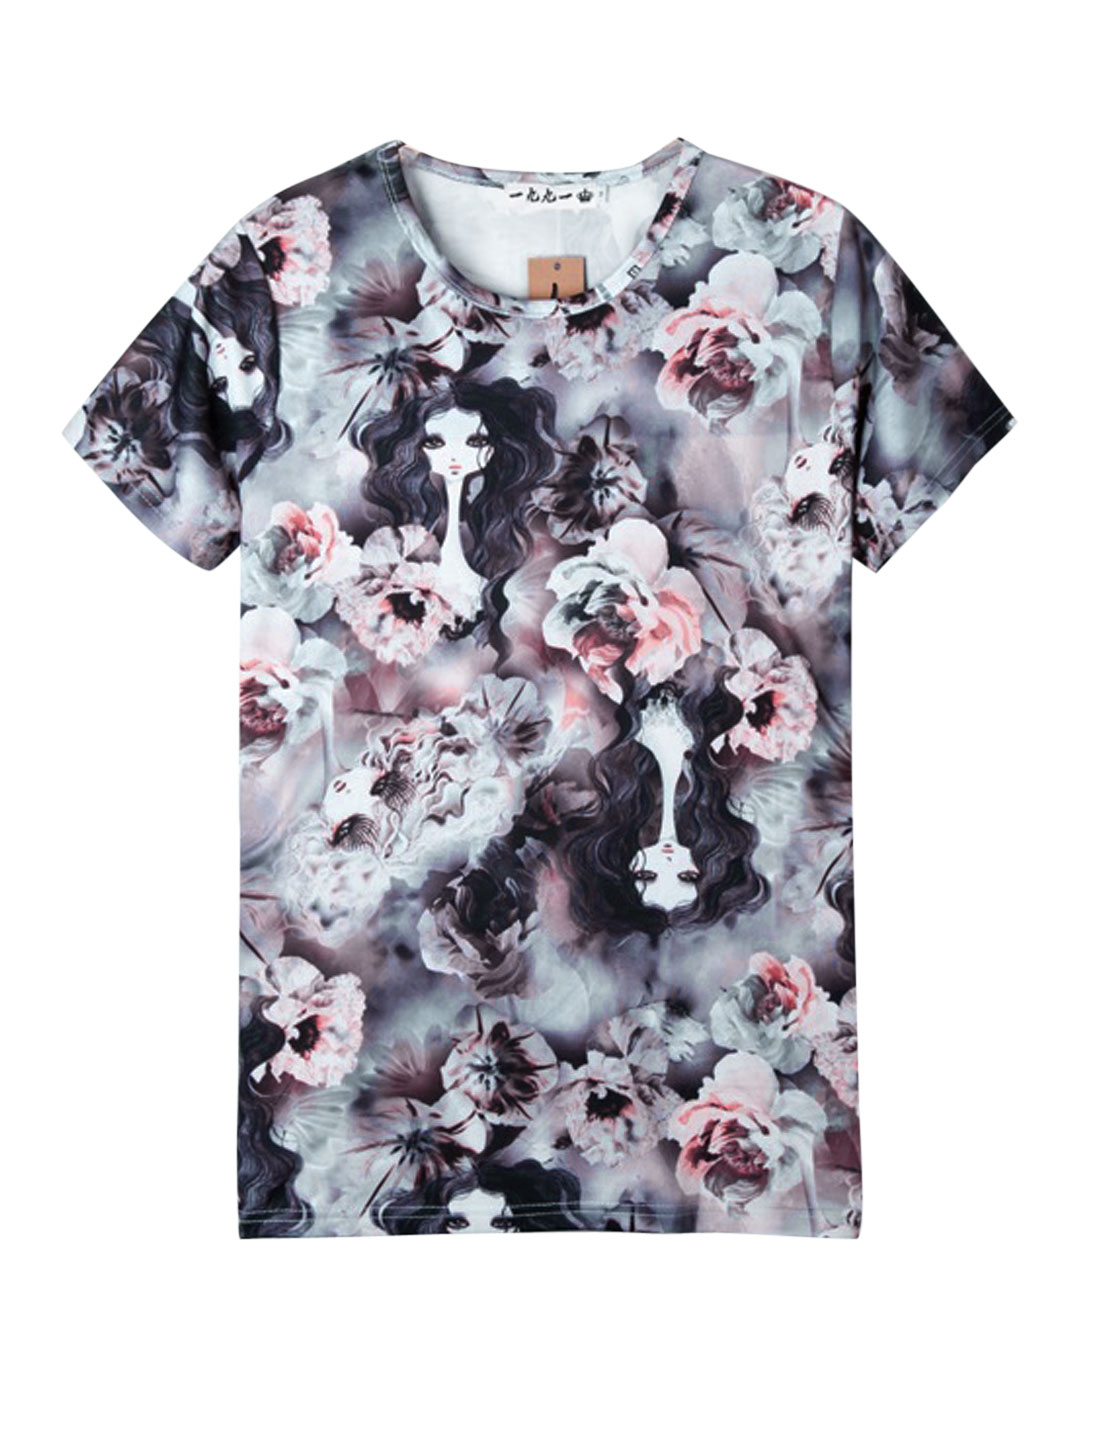 Men Casual Short Sleeve All Over Floral Prints T-Shirt Multicolor S